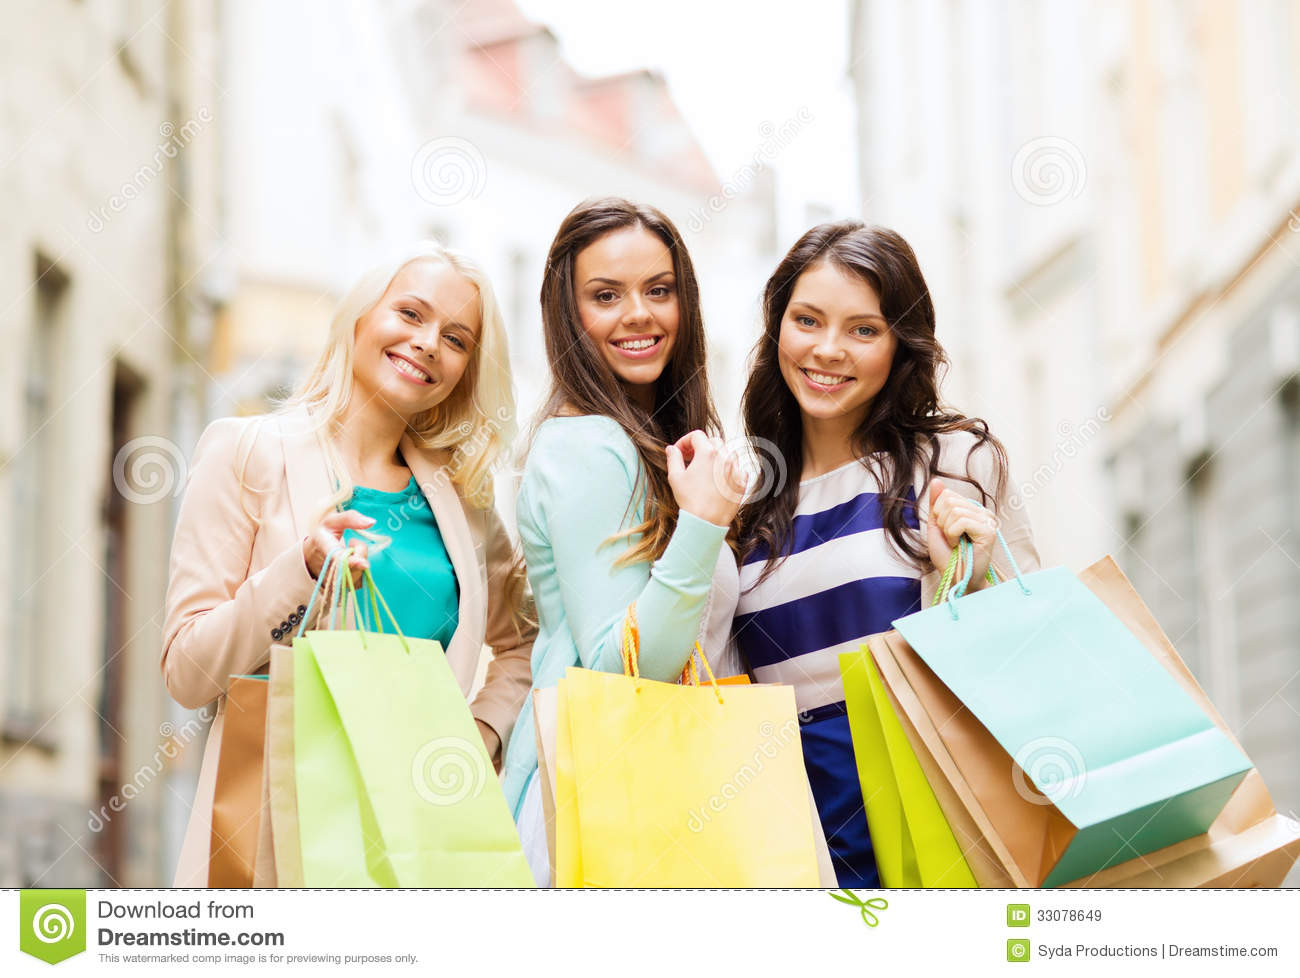 Girls With Shopping Bags In Ctiy Royalty Free Stock Images - Image ...